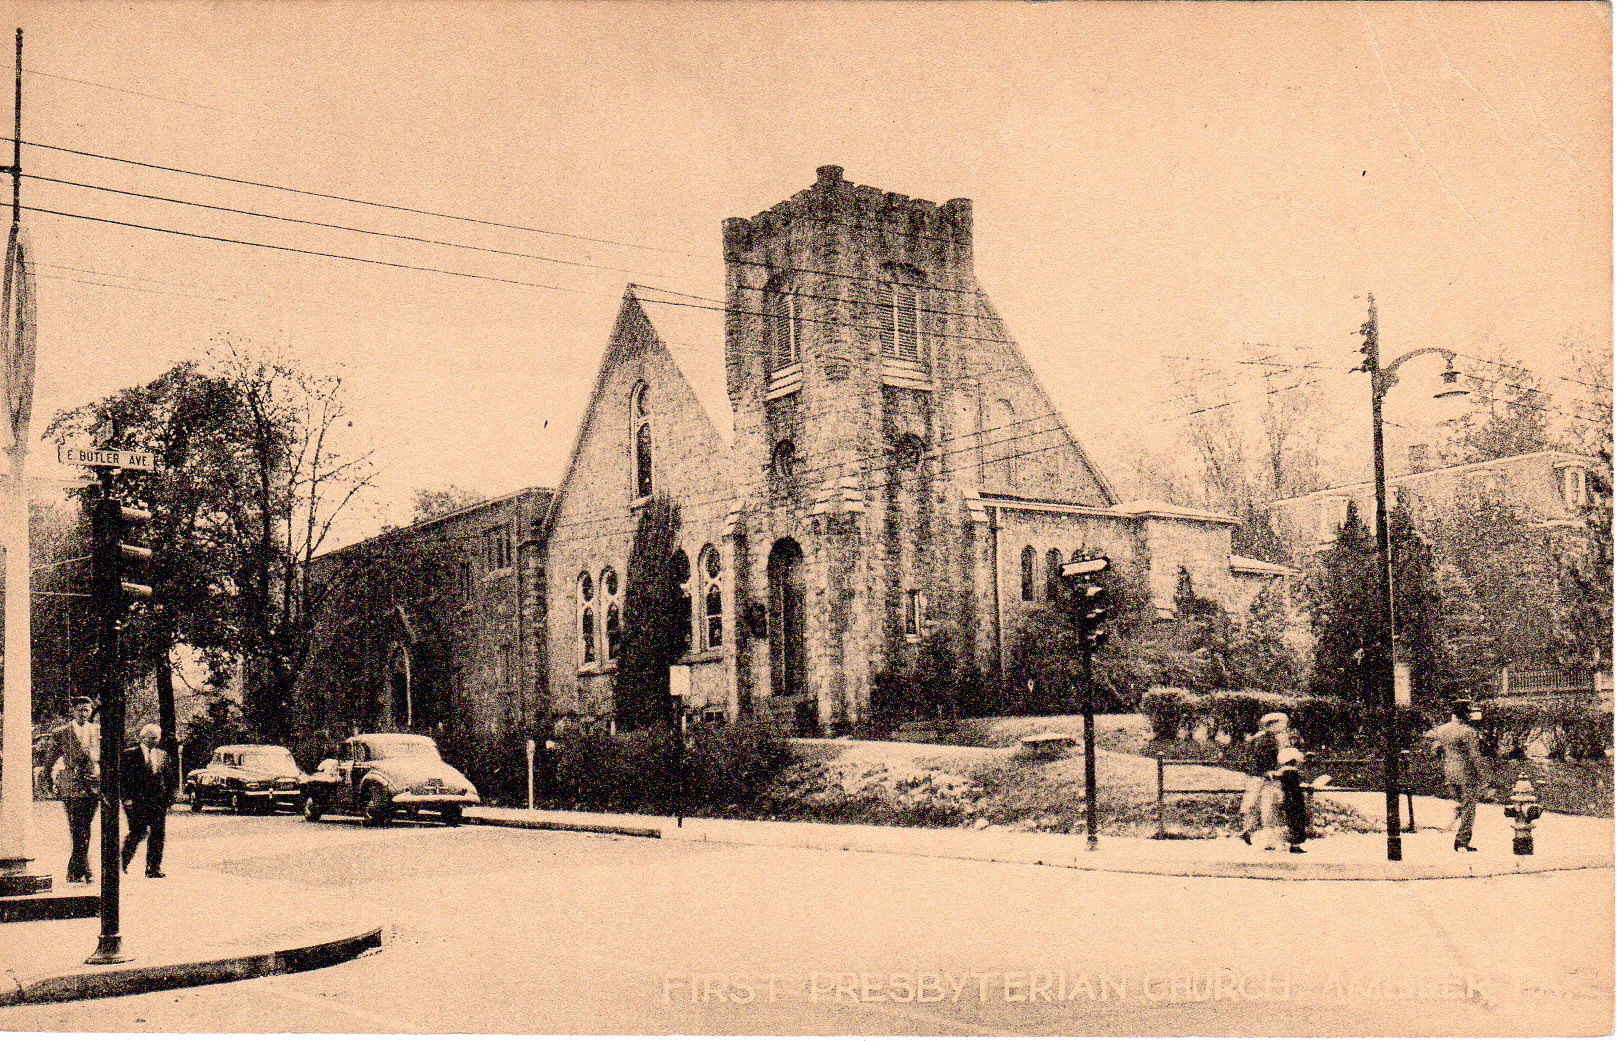 Post Card Collection (E Simon)_2682_31_First Presbyterian Church, Ambler, Pa_17 Jul 1955